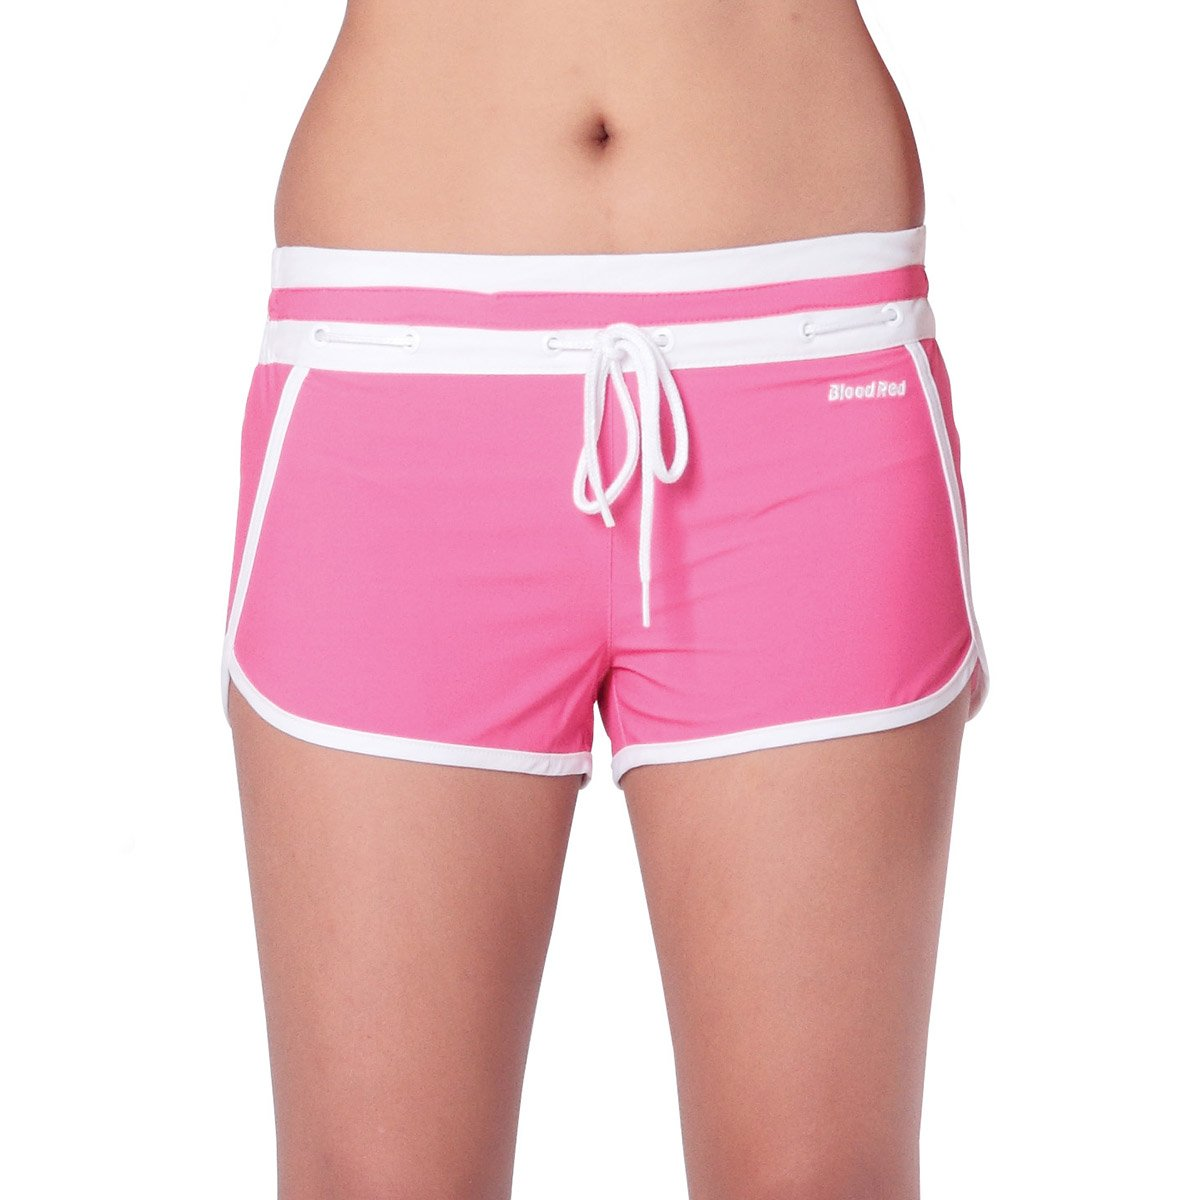 8d4afd0902 PINK CANDY SWIM SHORTS FOR WOMEN - BR